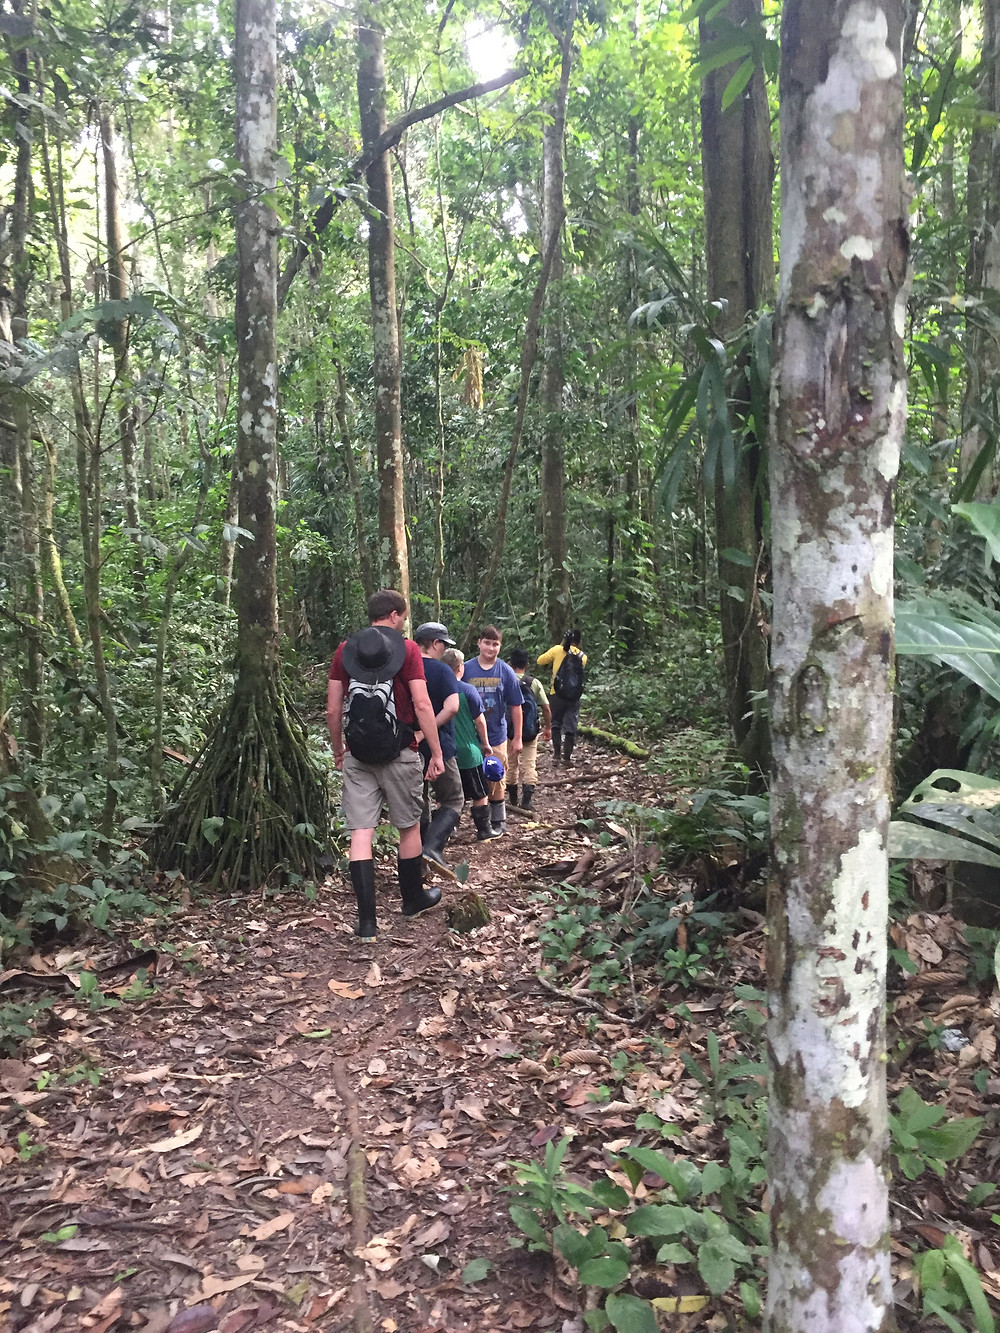 Hiking the Amazon Rain Forest